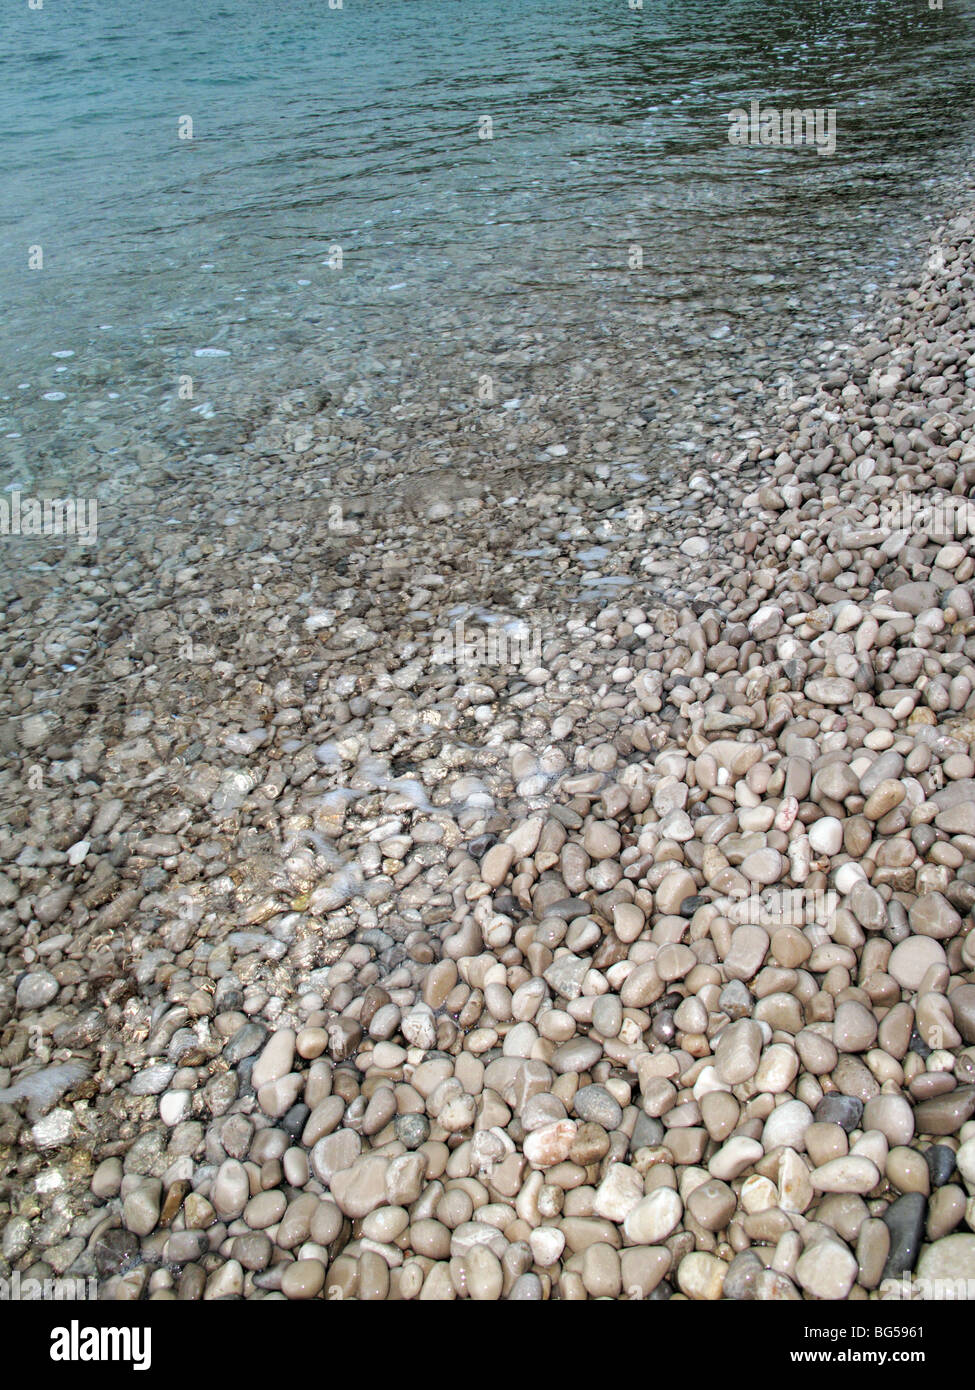 Close up of pebbled beach - Stock Image